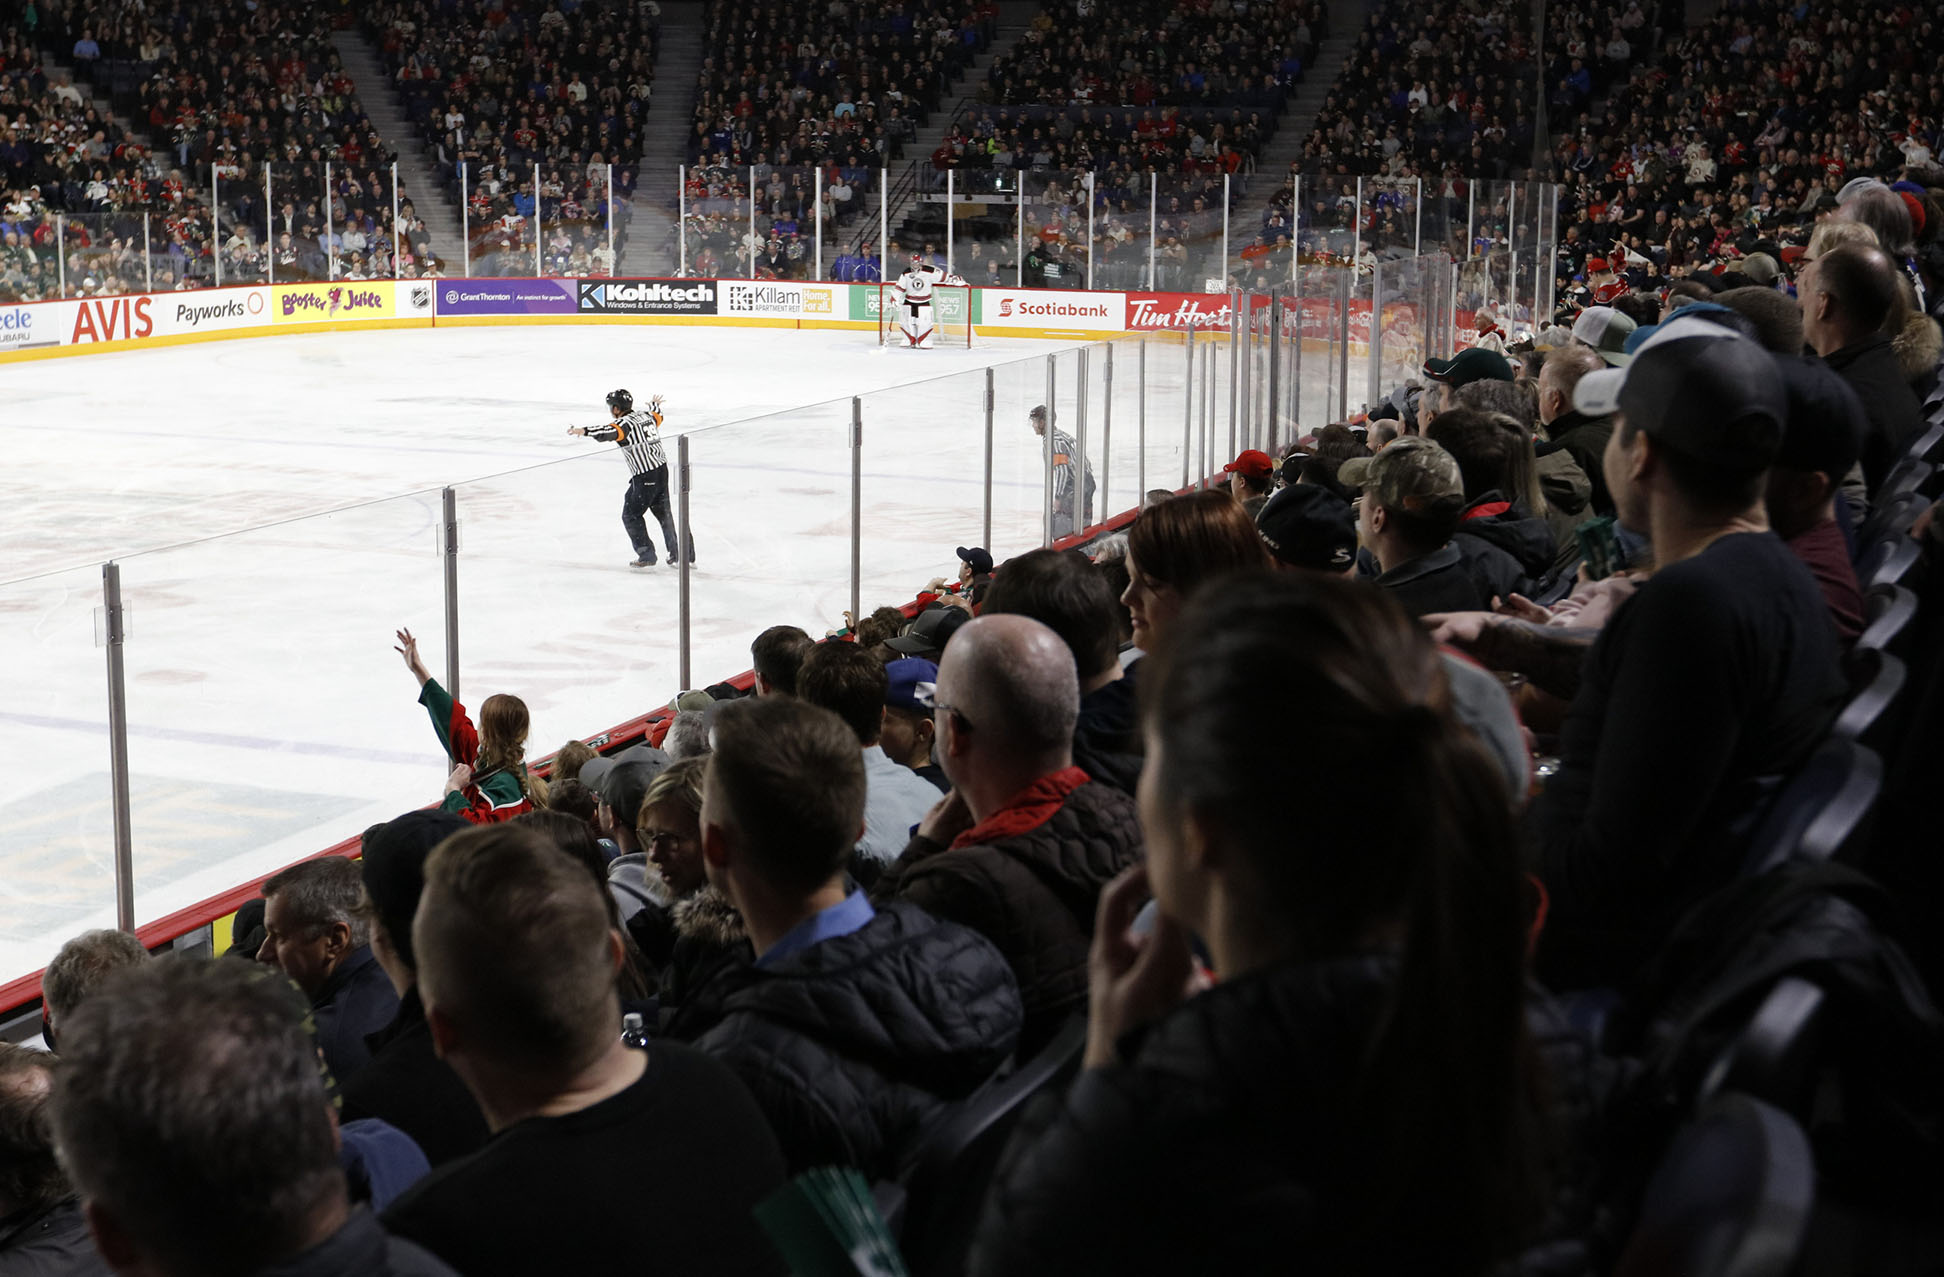 Halifax Hockey Photography: Quebec Rempart vs Halifax Mooseheads at ScotiaBank Centre in Halifax, Nova Scotia. QMJHL Playoff Action